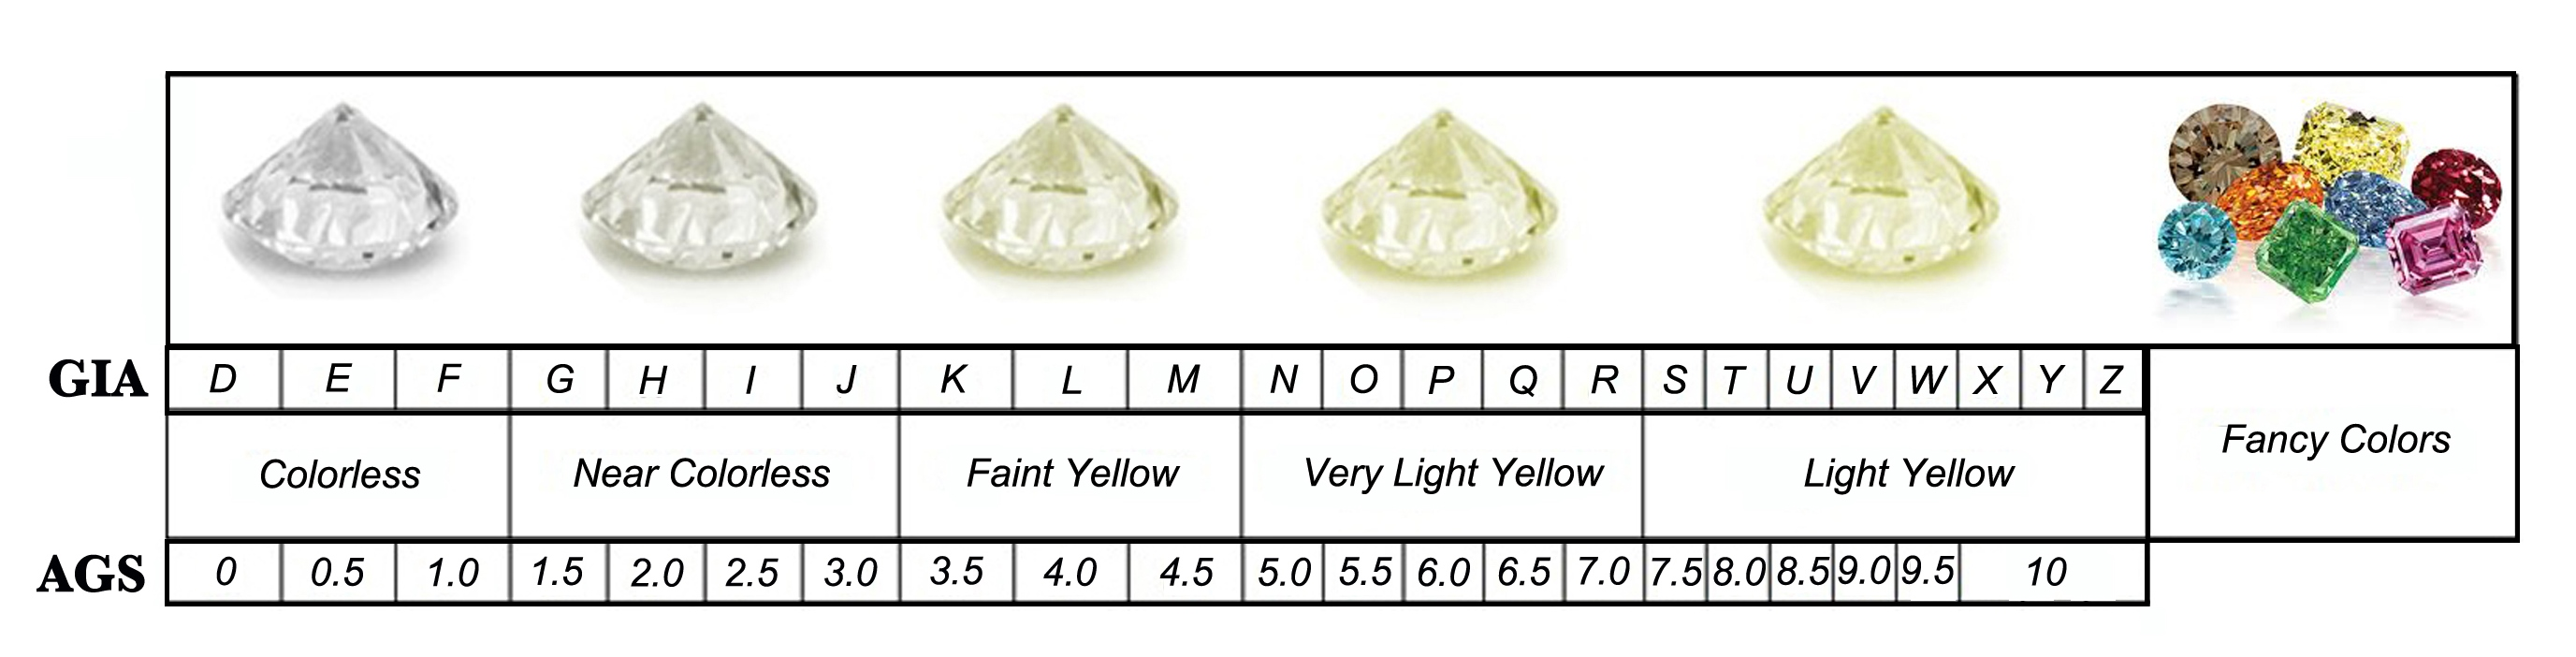 shopping with diamond com b clarity chart diamondforyou diamonds all about carat us